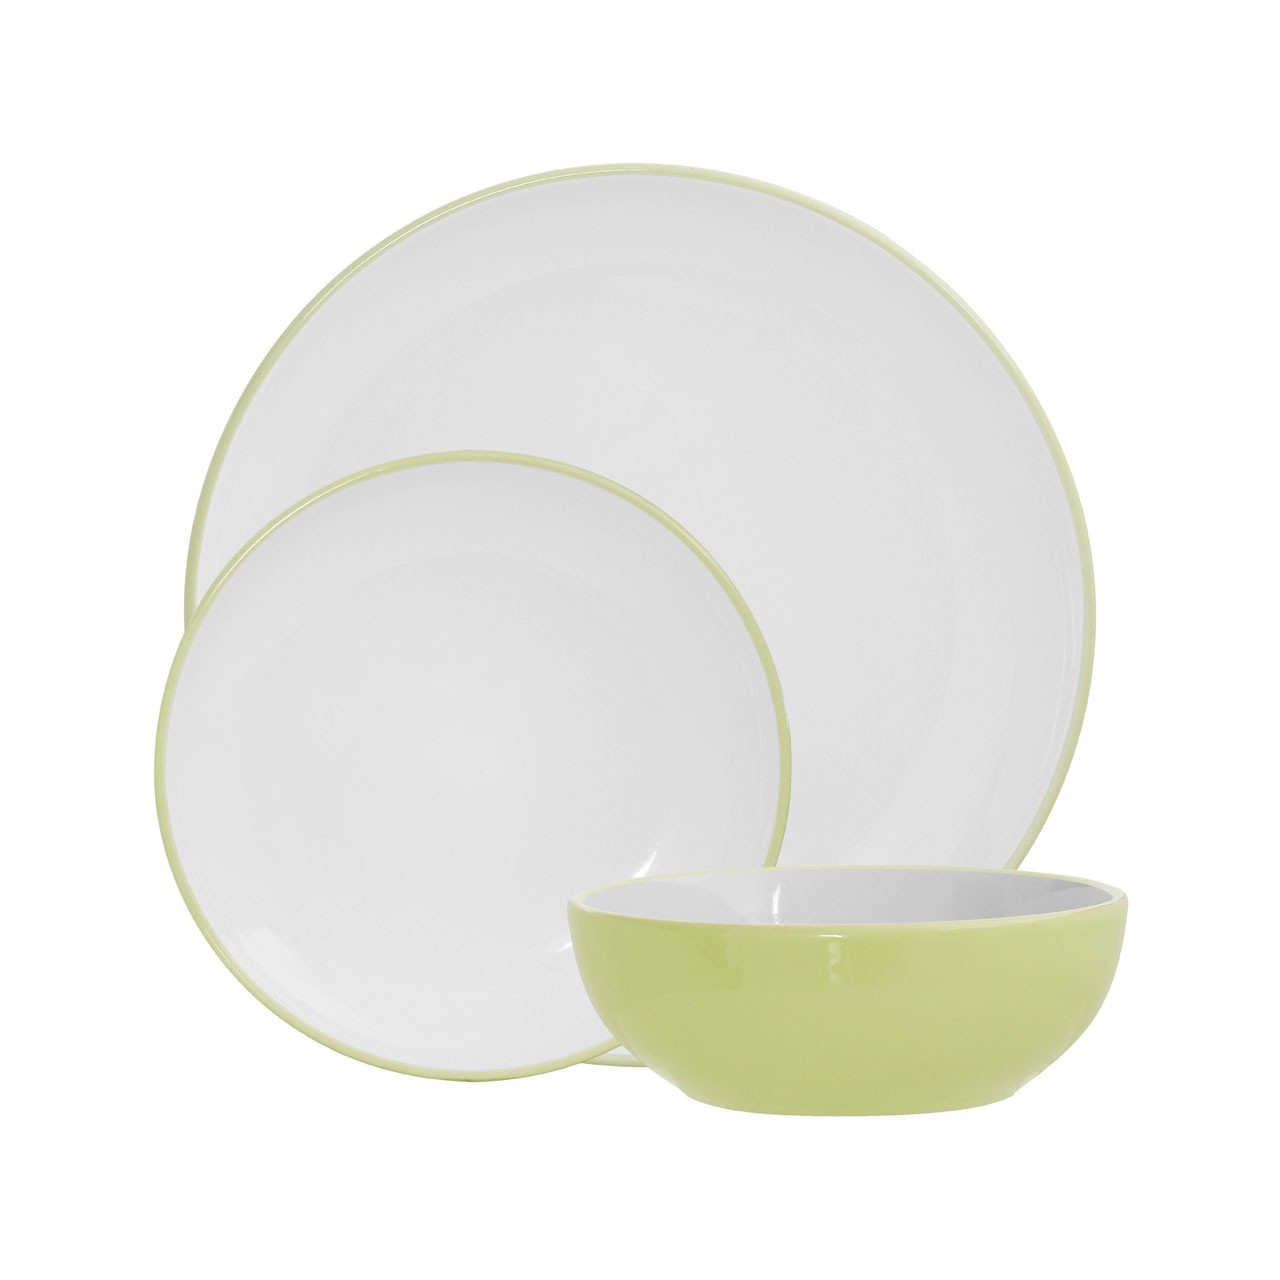 12pc Sienna Dinner Set - Green/White Stoneware